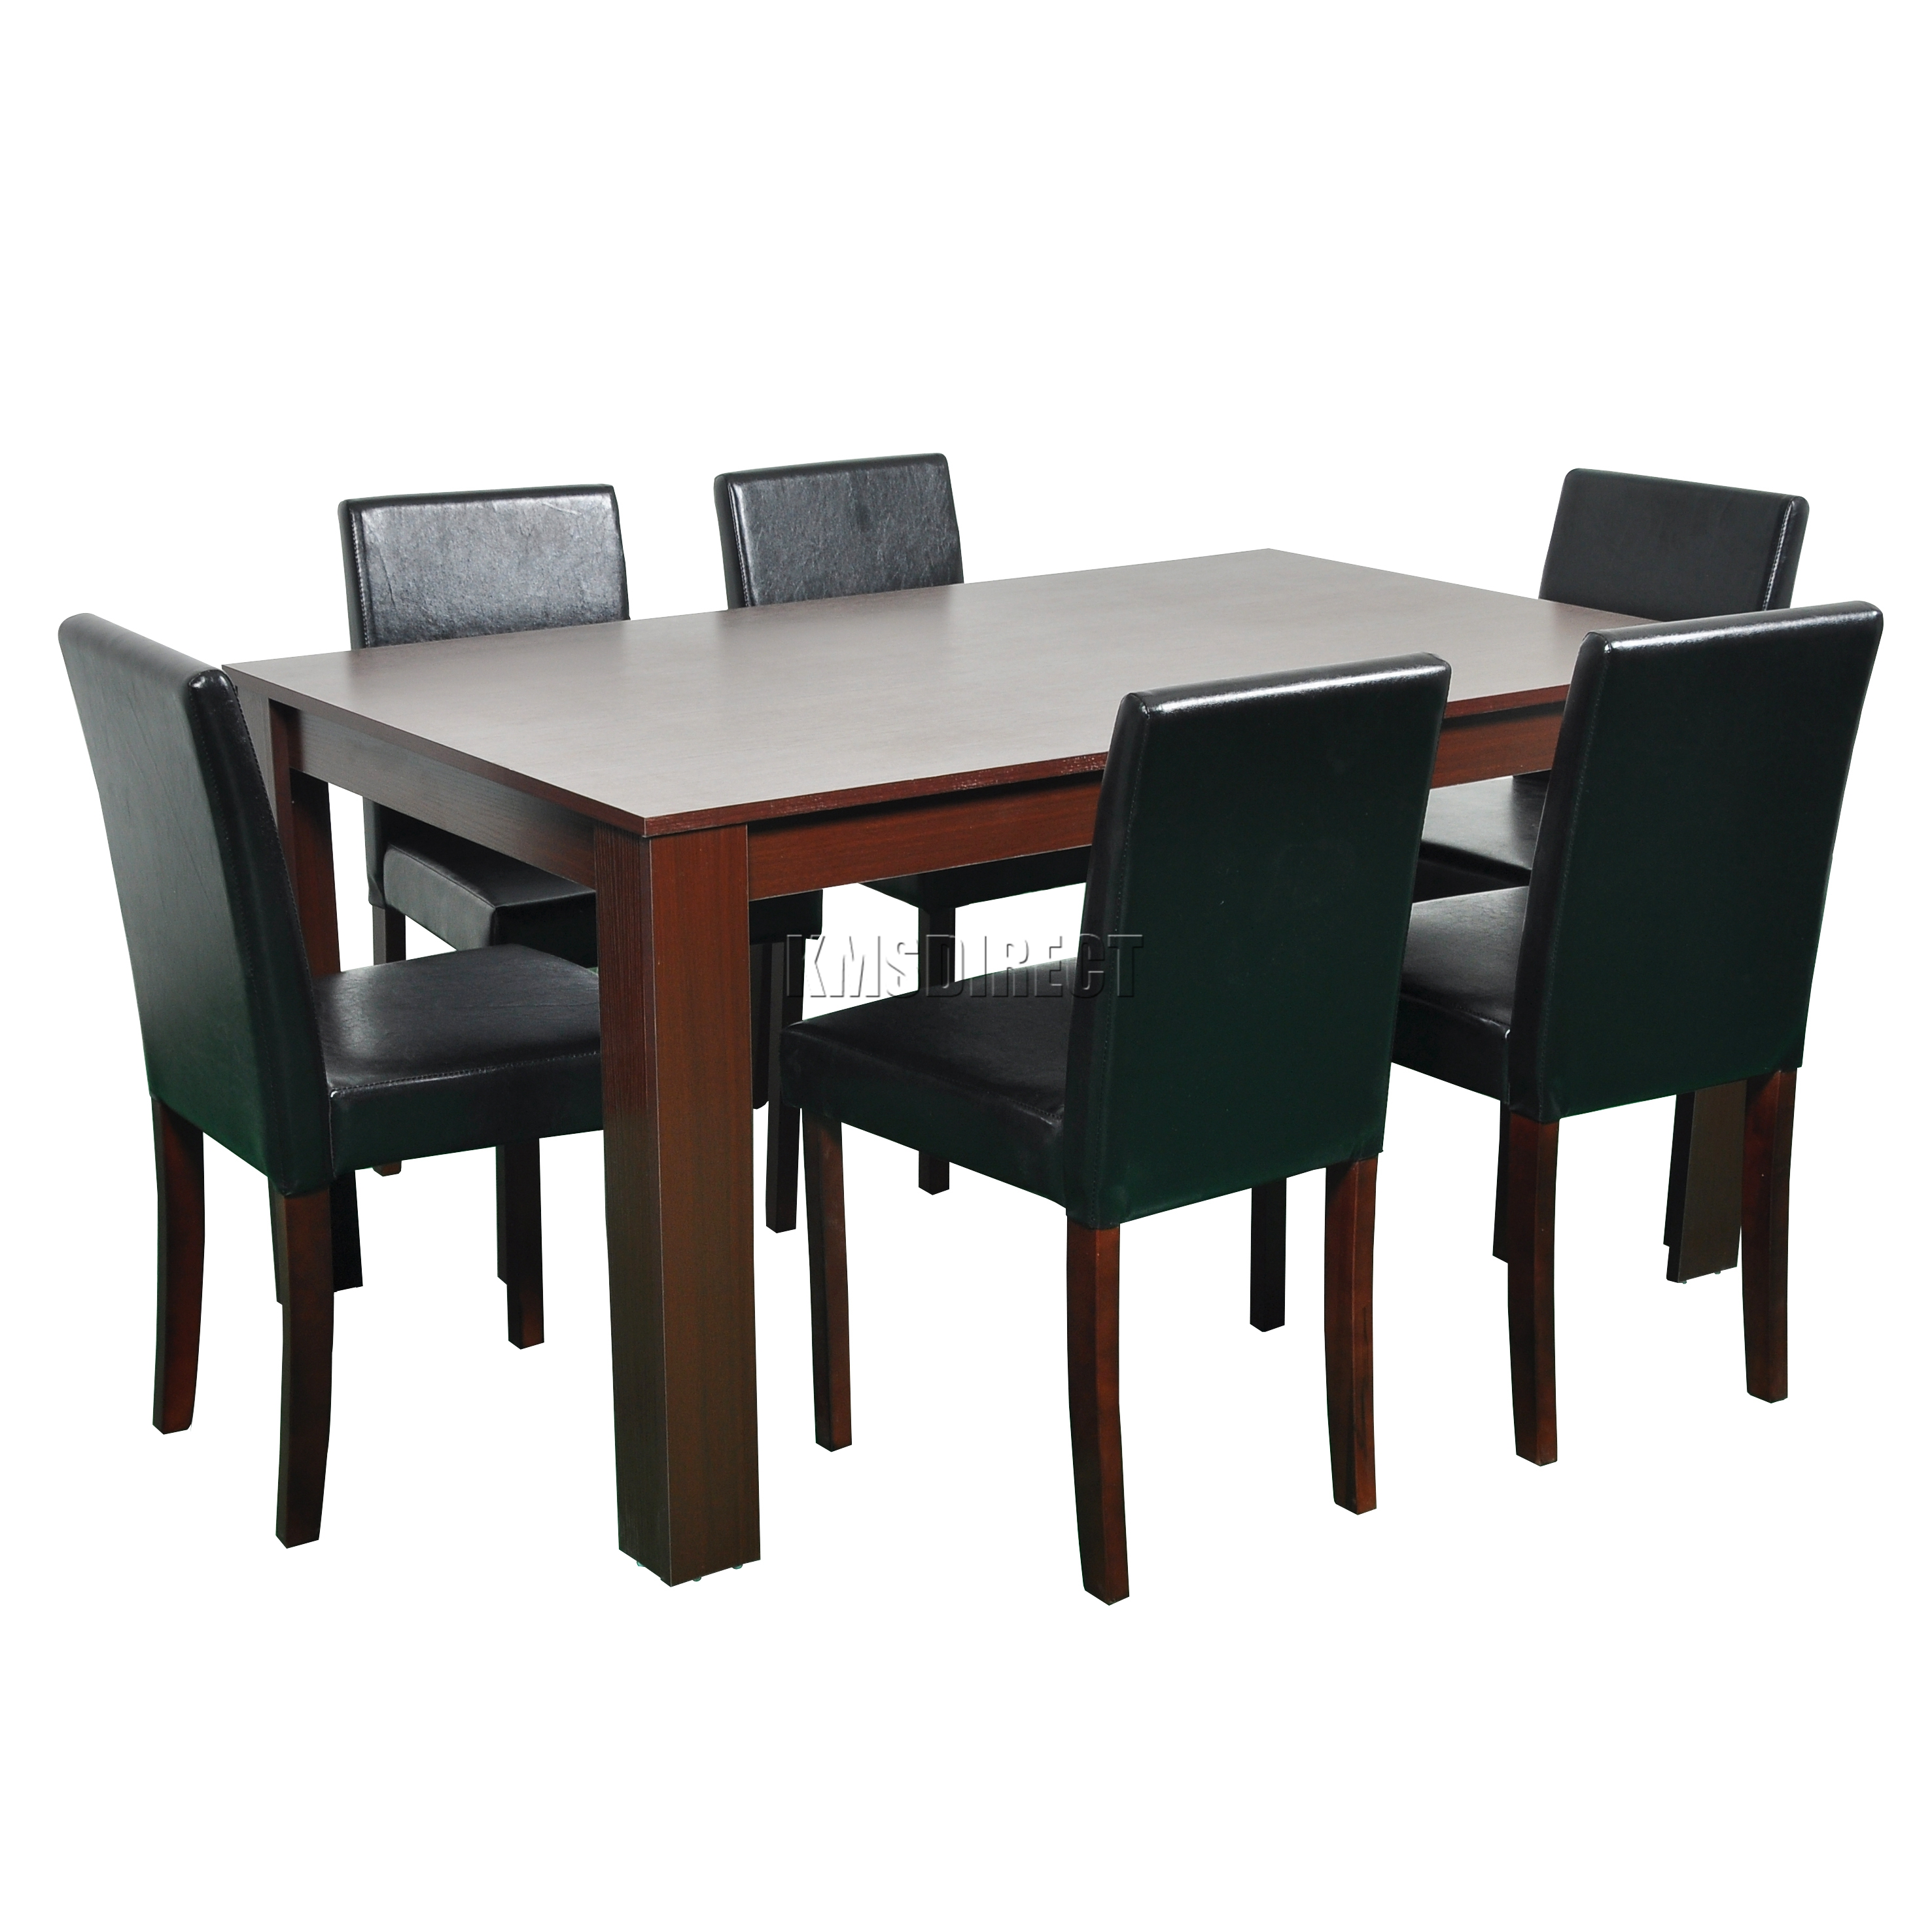 Foxhunter Wooden Dining Table And 4 Or 6 Pu Faux Leather